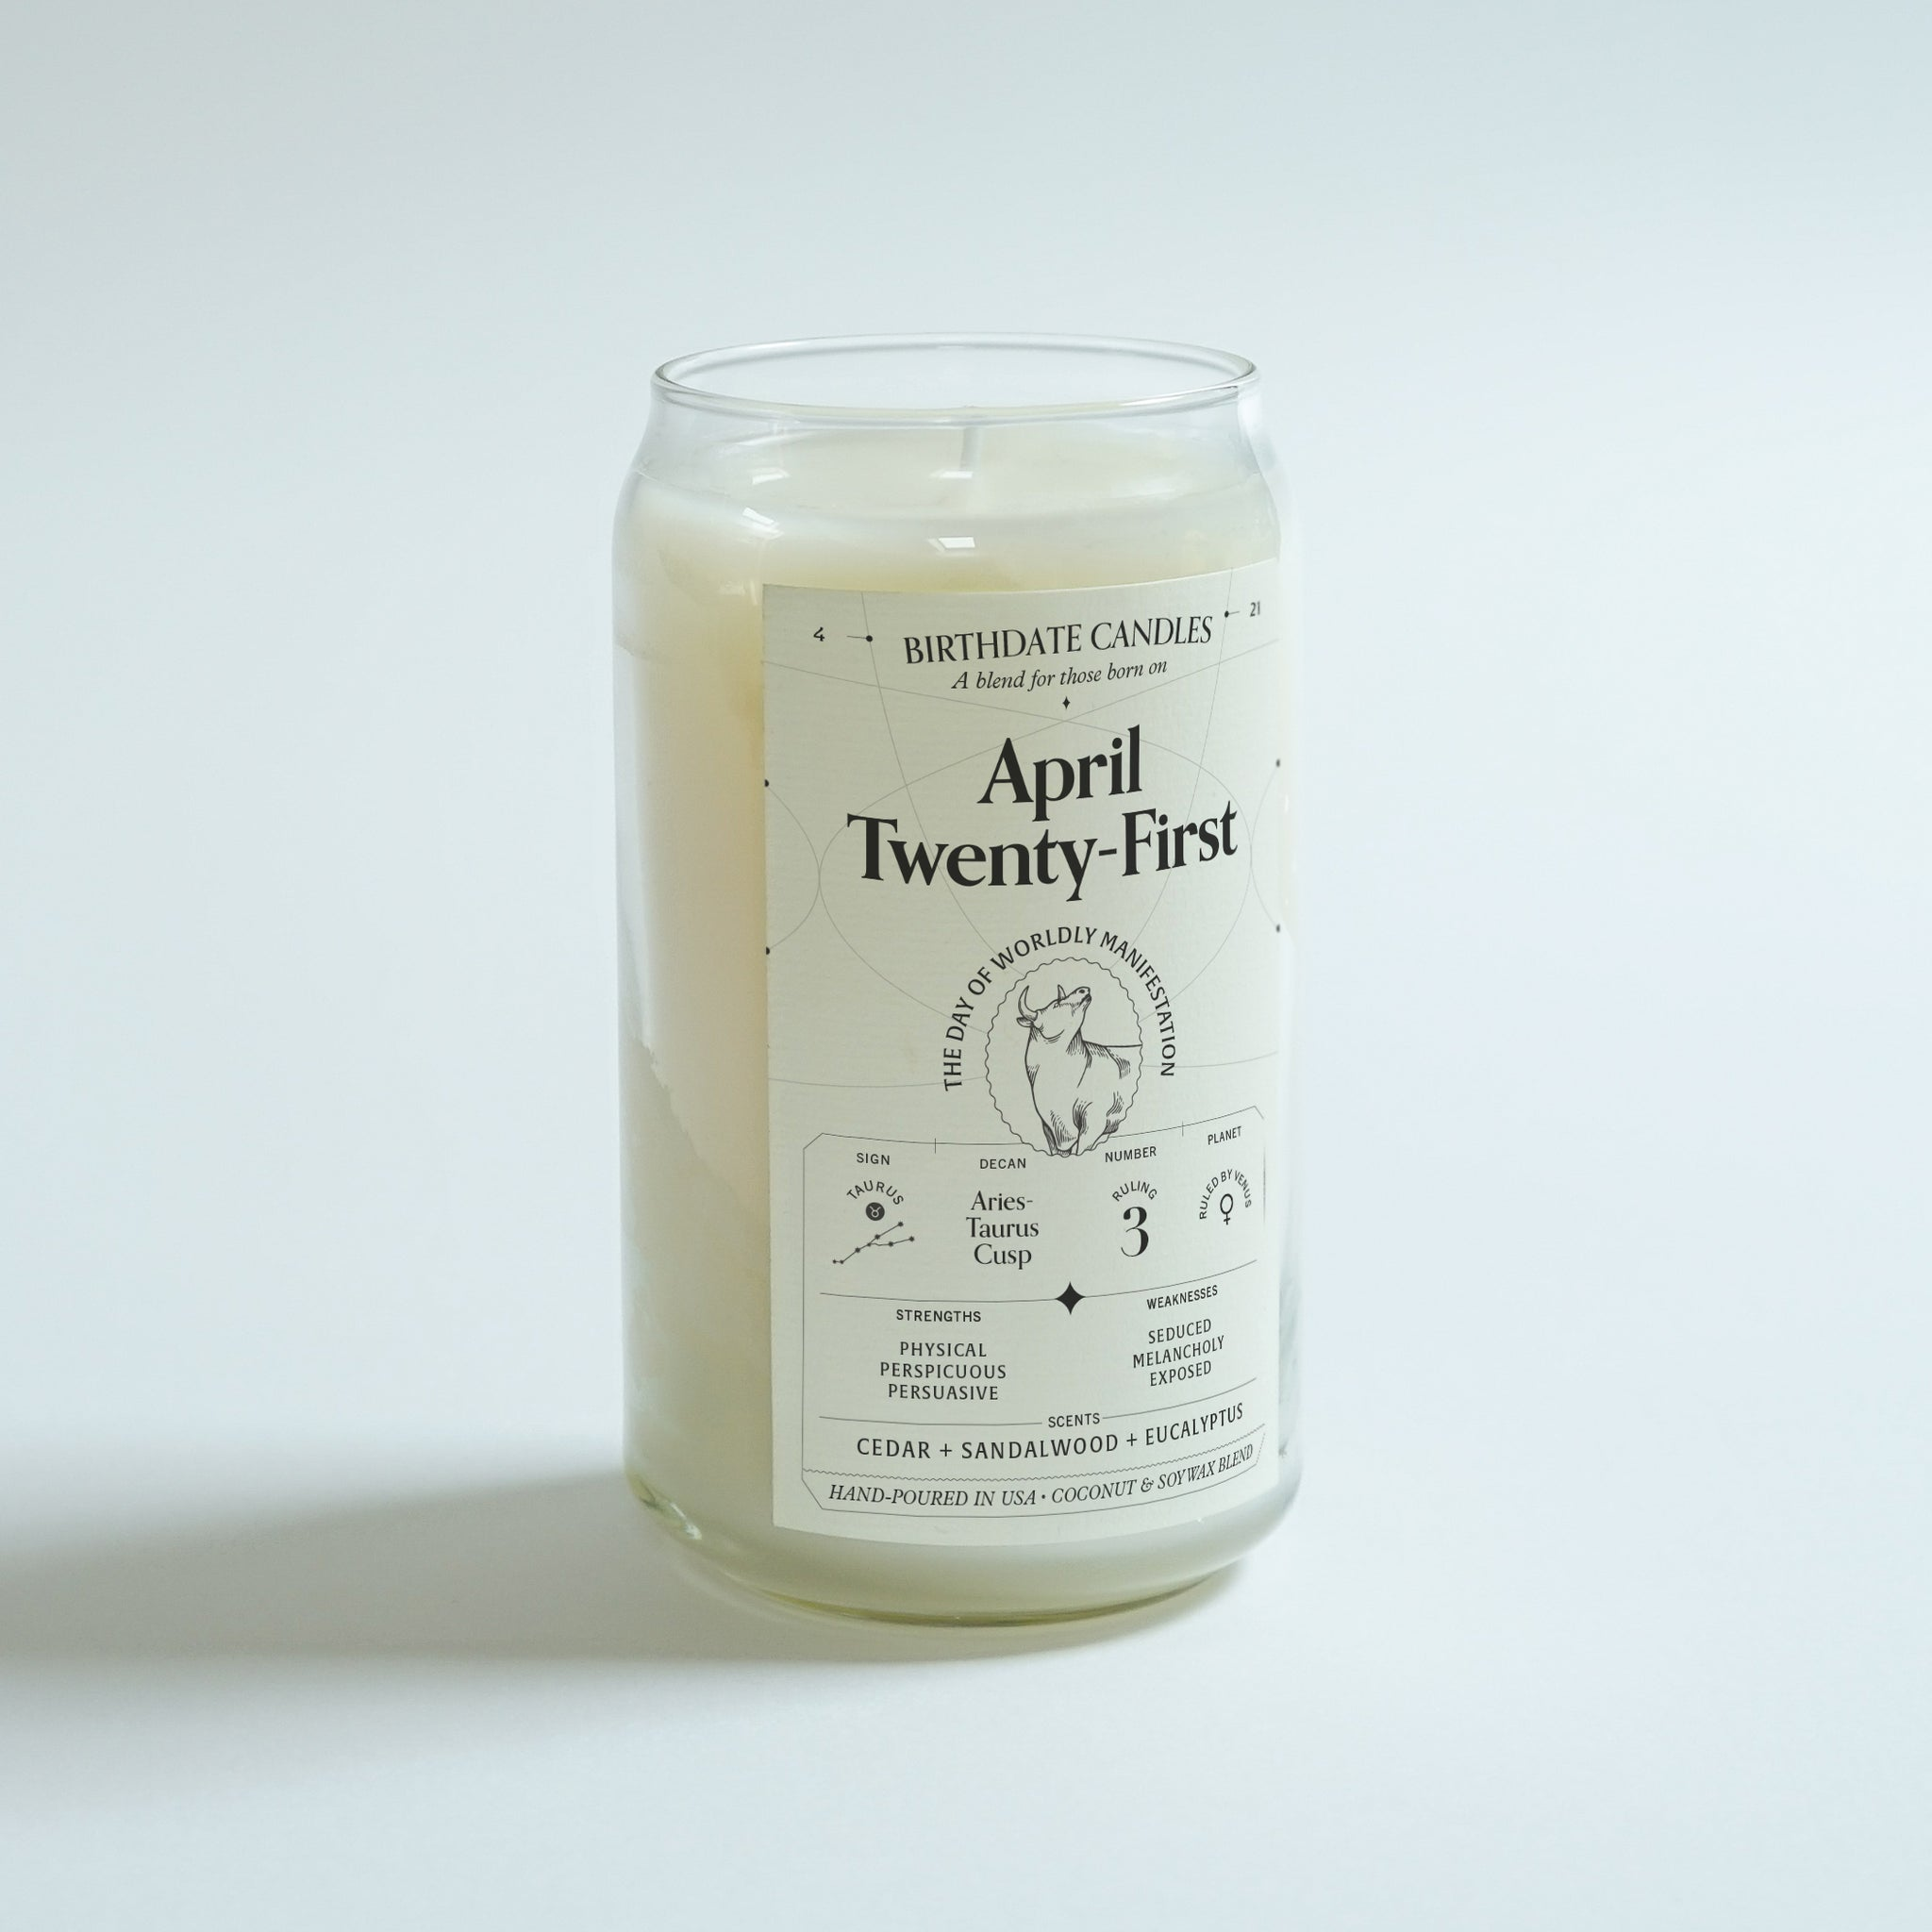 The April Twenty-First Birthday Candle